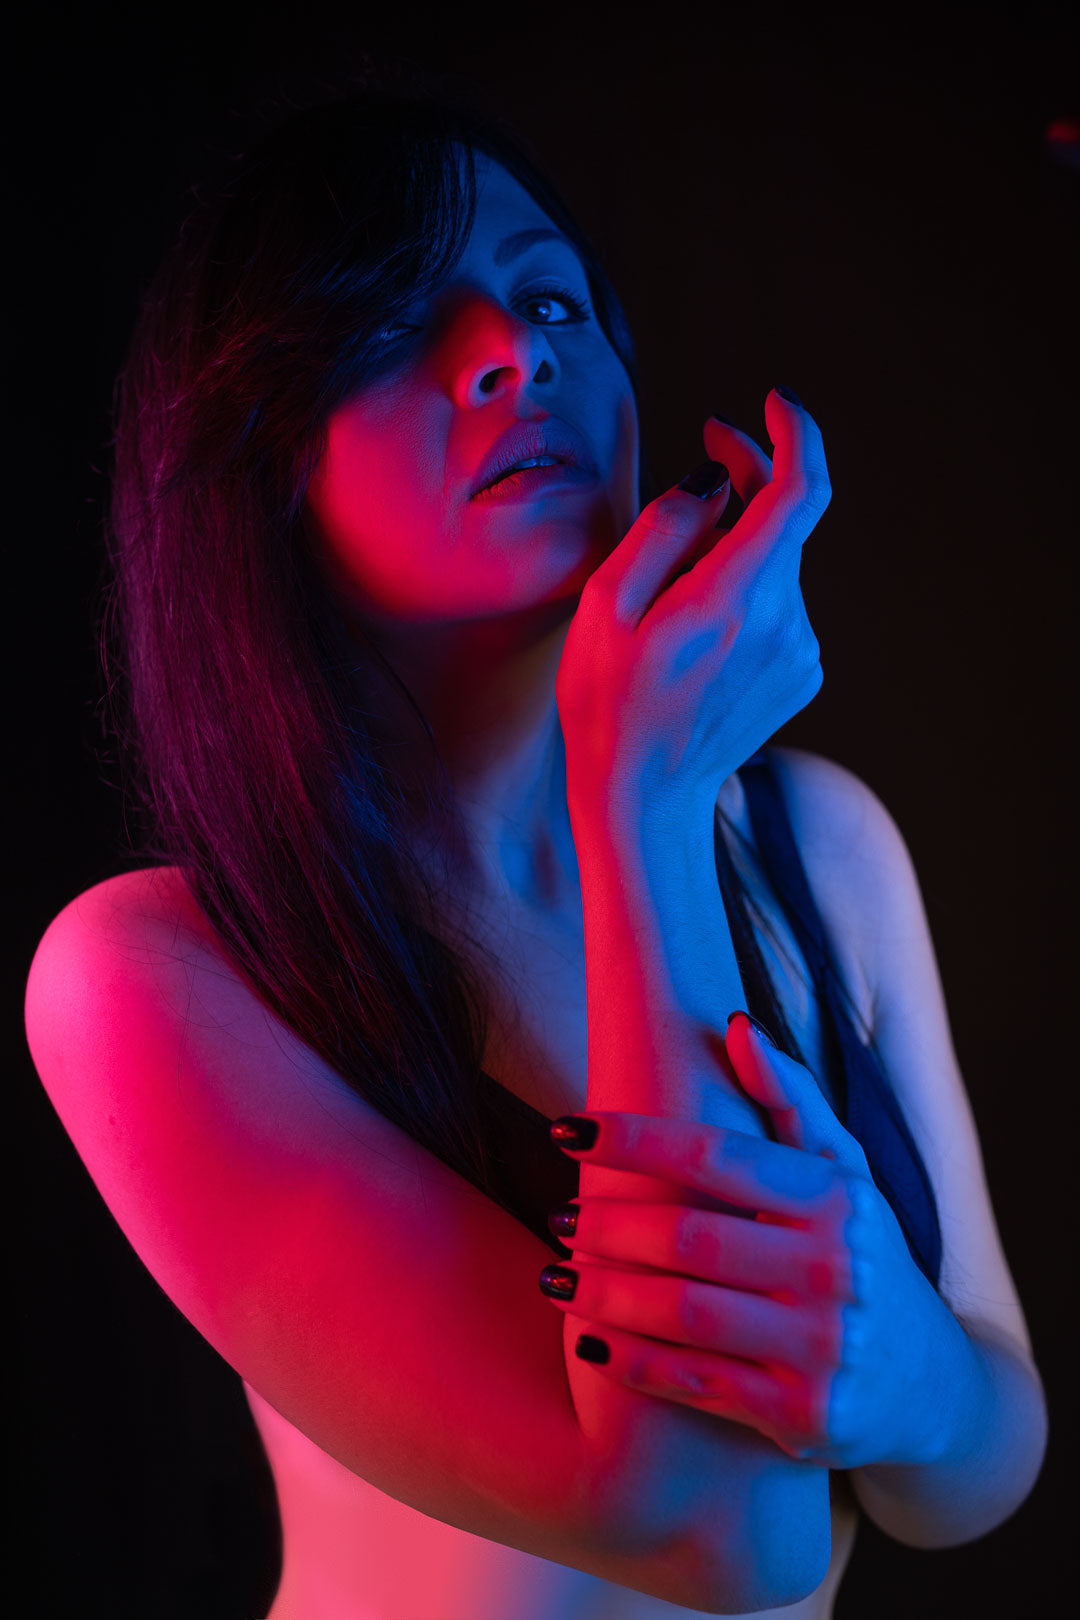 Female model posing with neon colors